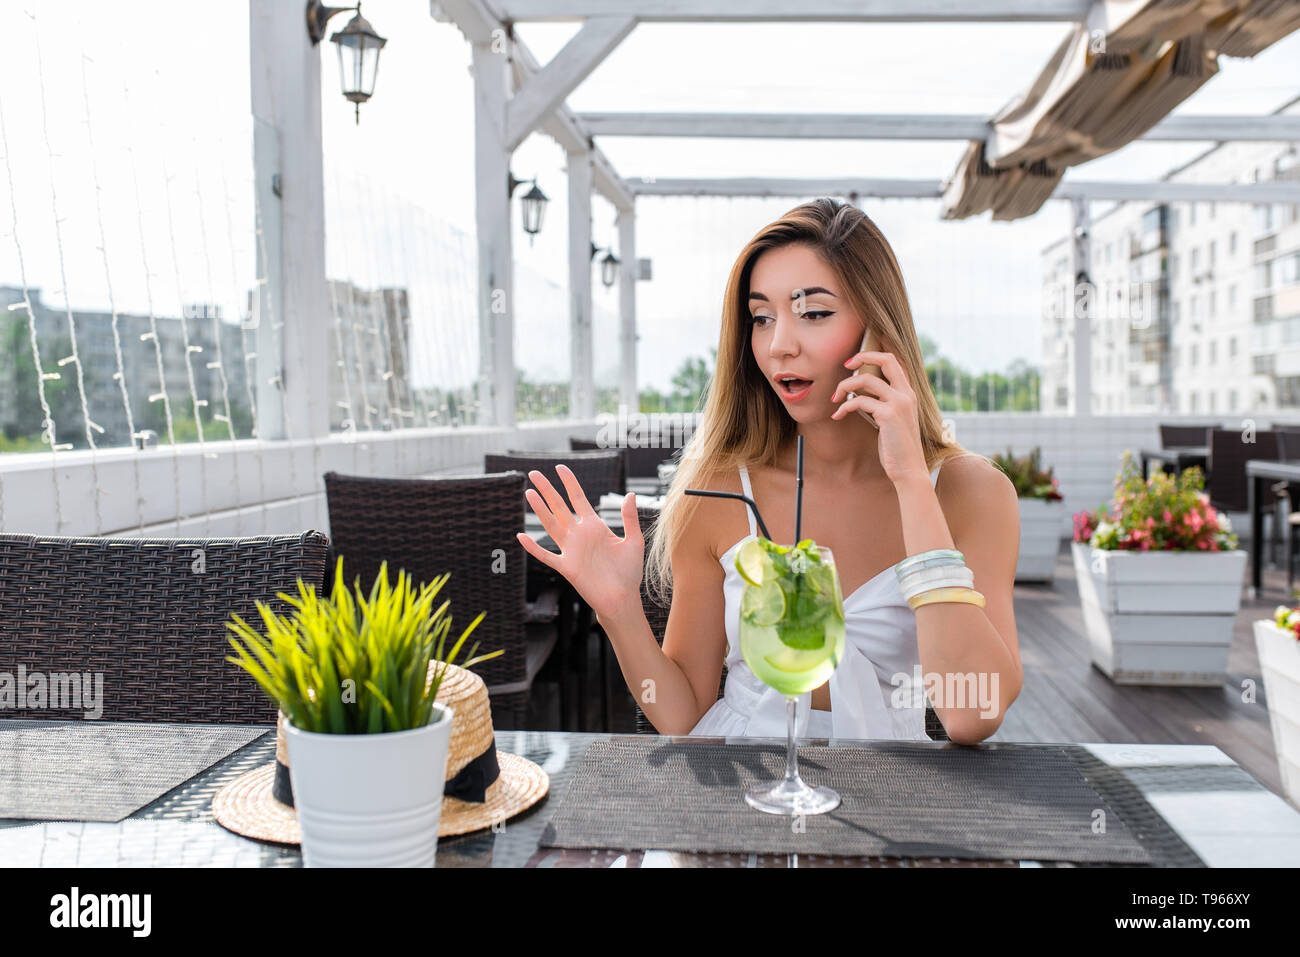 Woman white dress summer cafe calling phone, surprised shock, bewilderment. Surprise delight, conversation smartphone. Breakfast lunch snack - Stock Image